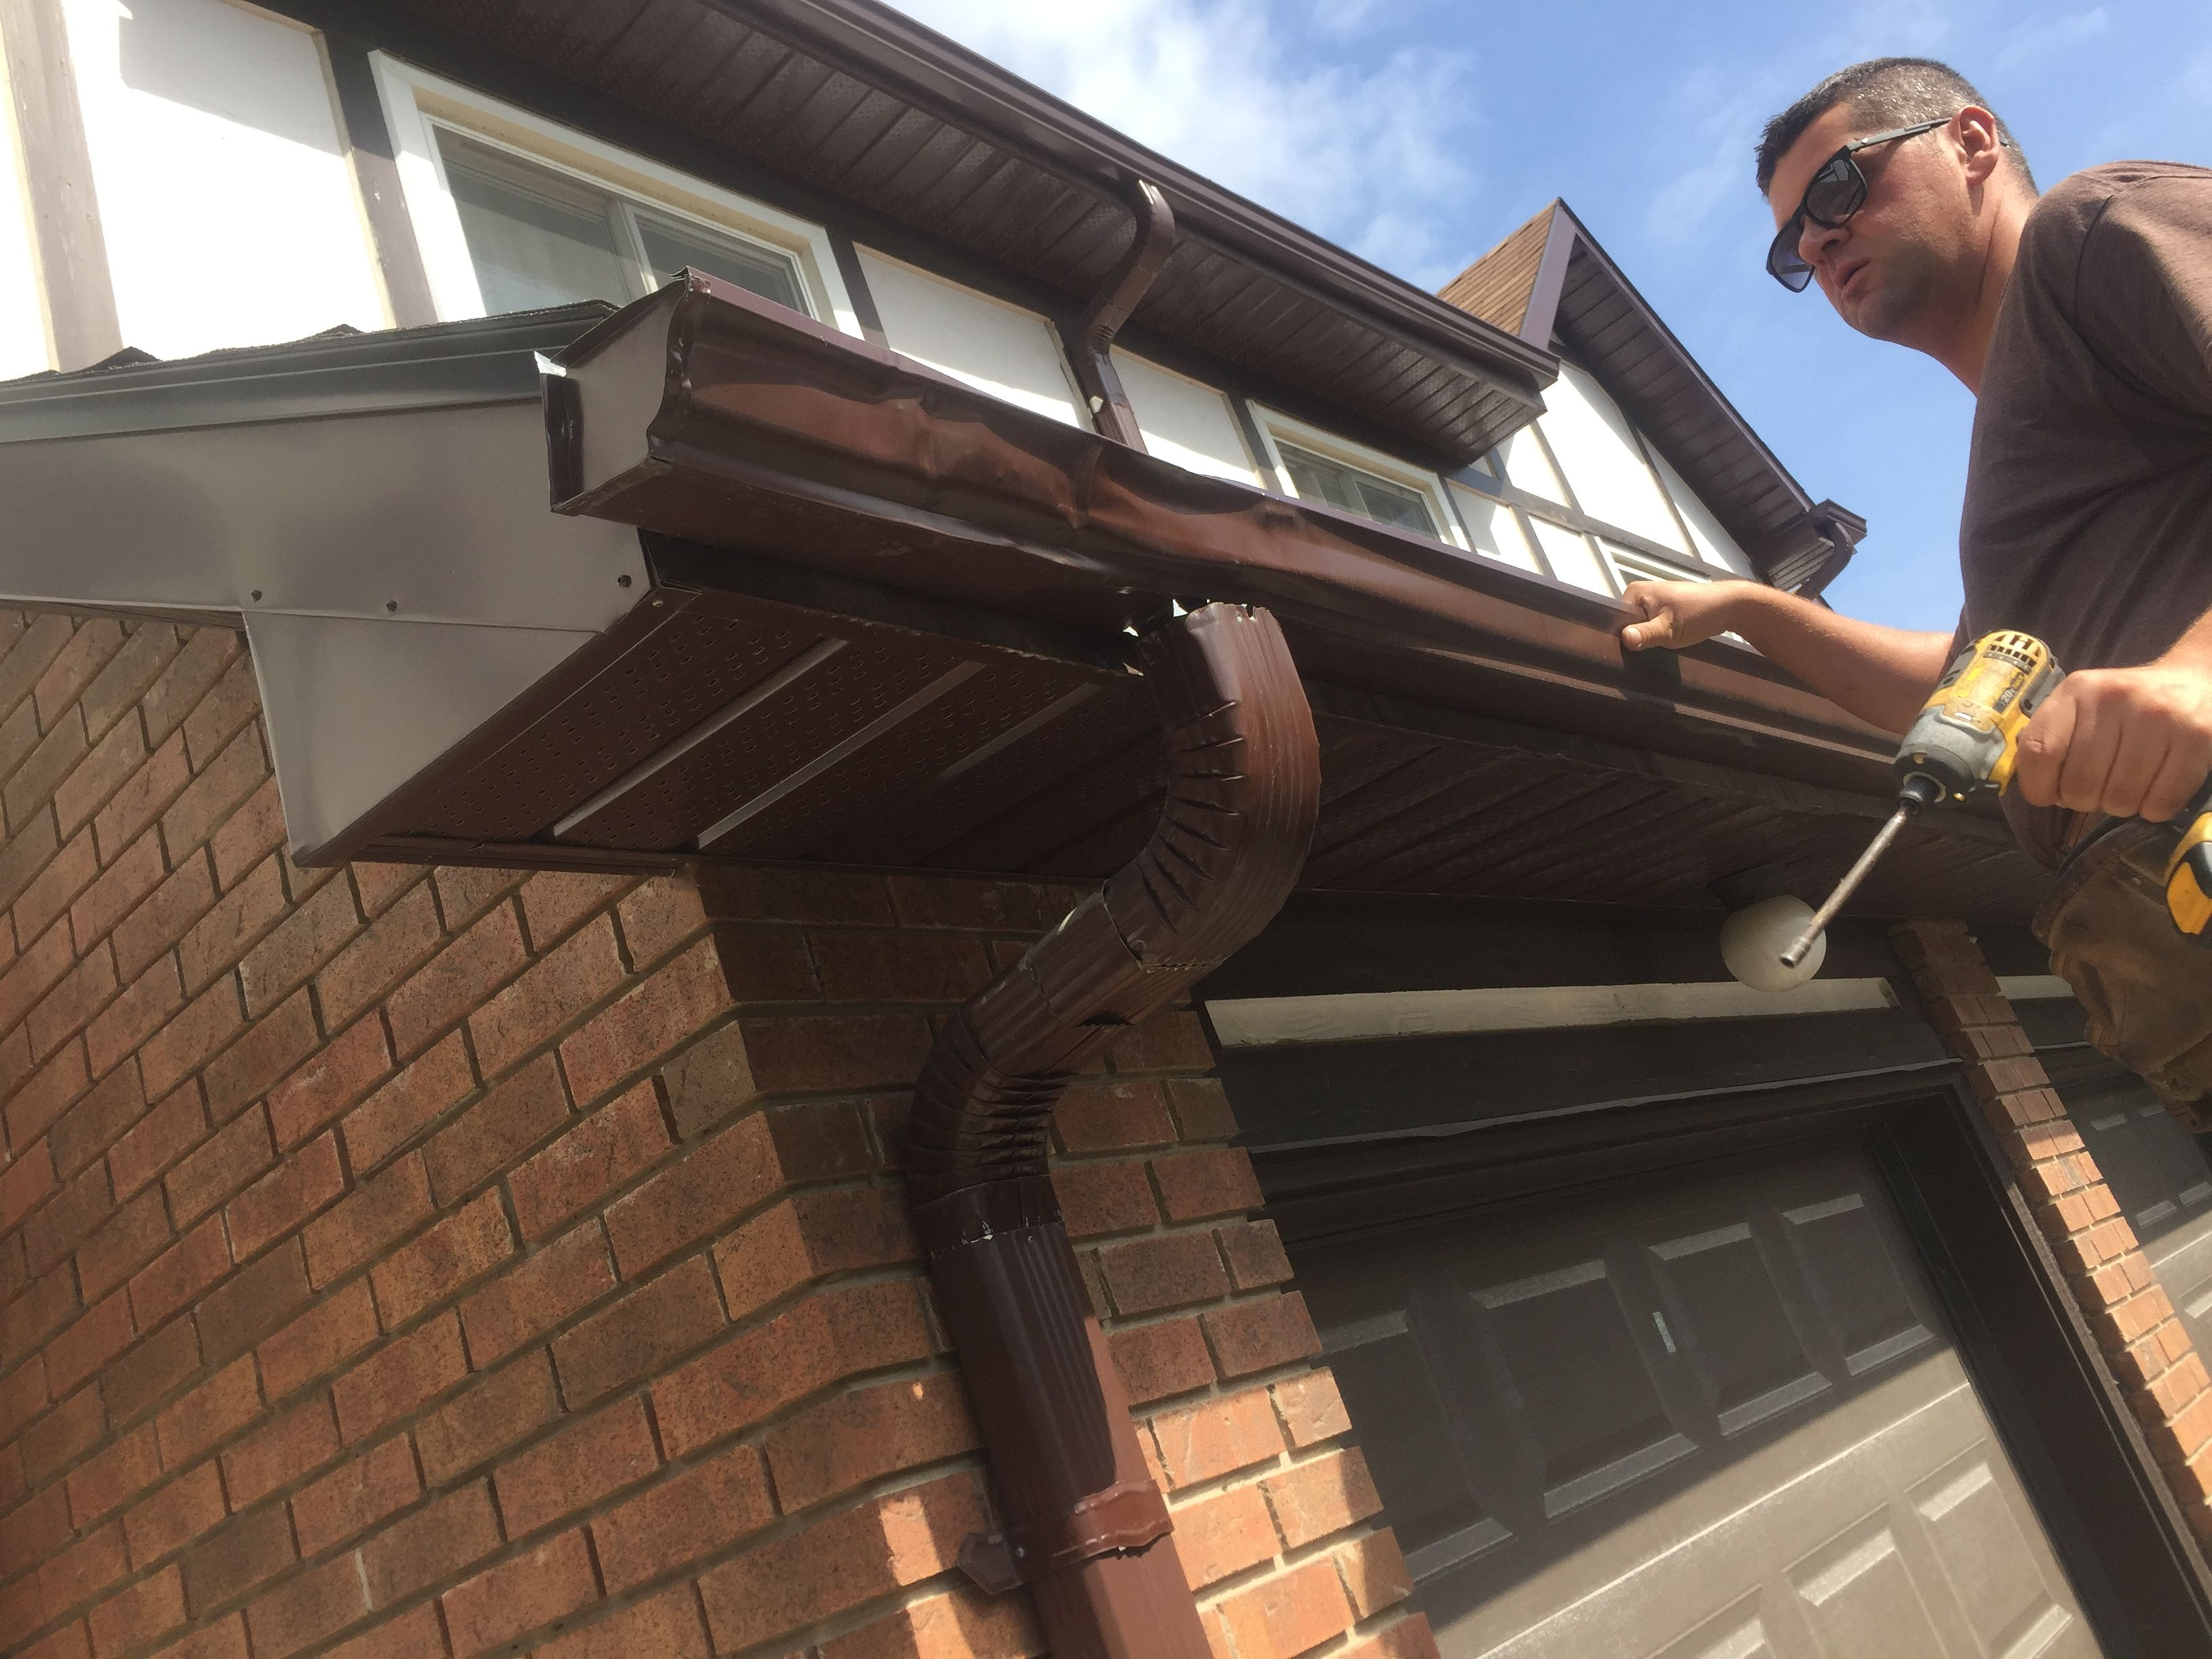 Damaged Gutters Gutters House System Types Of Houses